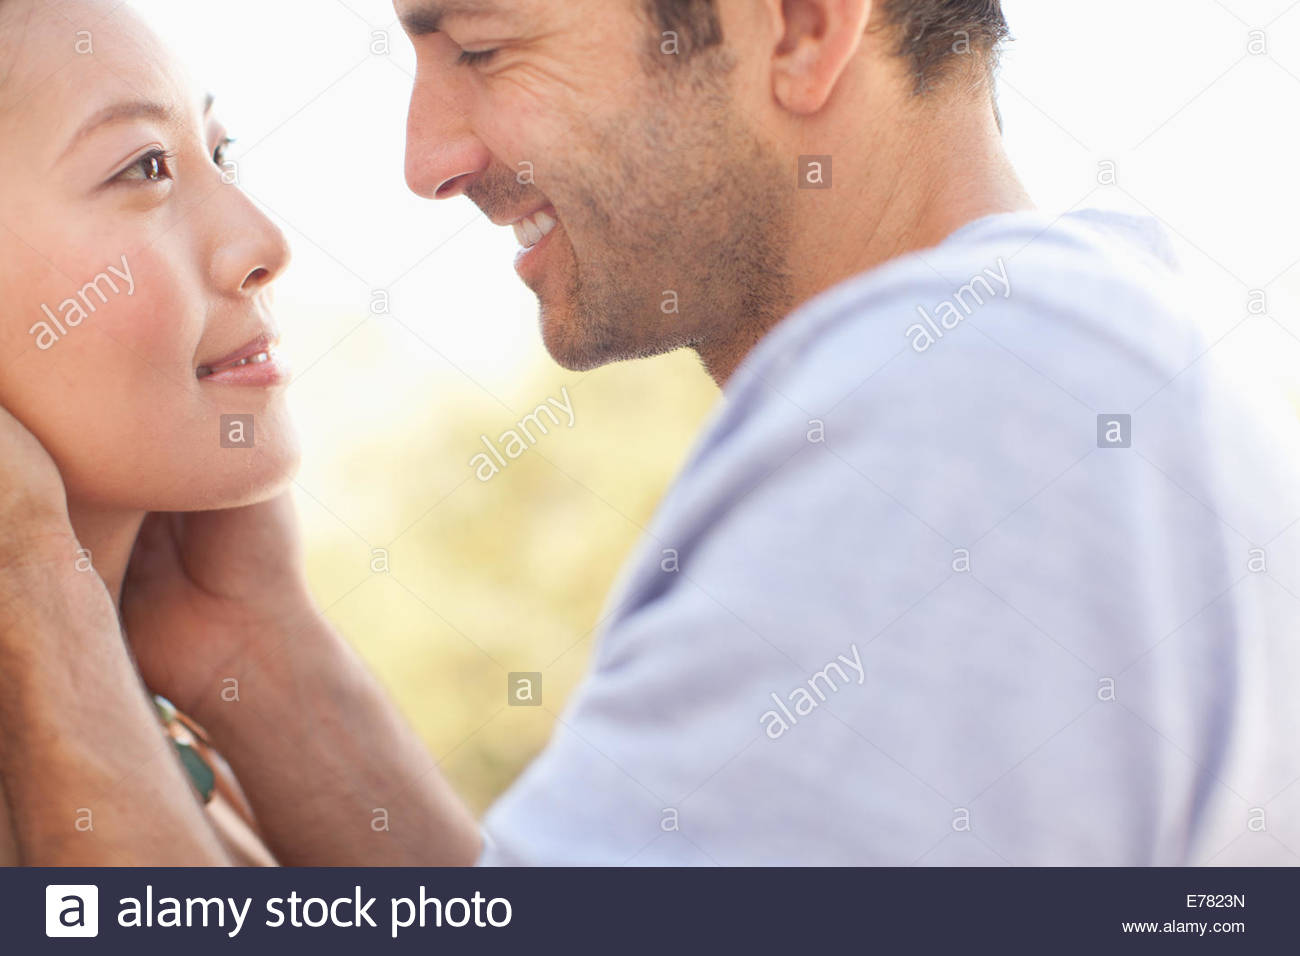 Close up of smiling faces du couple Photo Stock